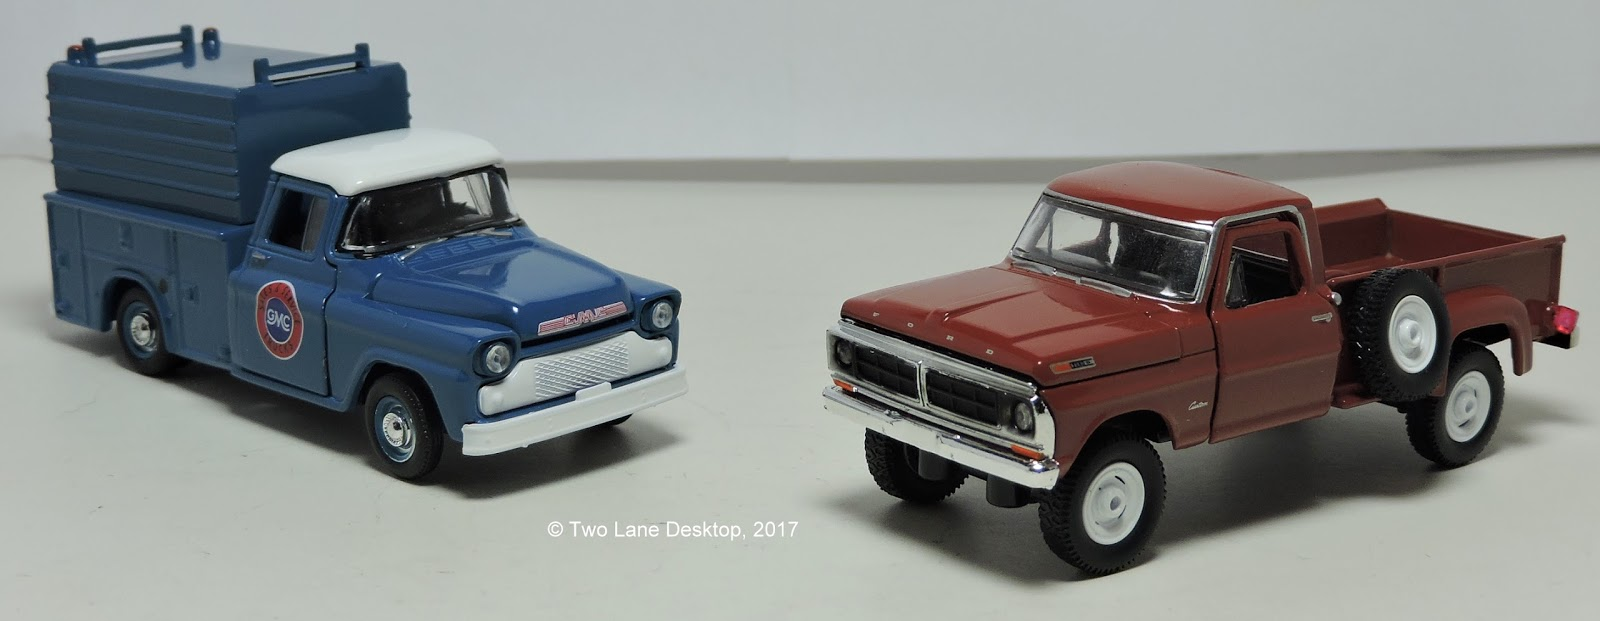 here s a look at a few good m2 machines truck castings with their first time bed variations the gm trucks have already gotten the utility trailer package  [ 1600 x 621 Pixel ]